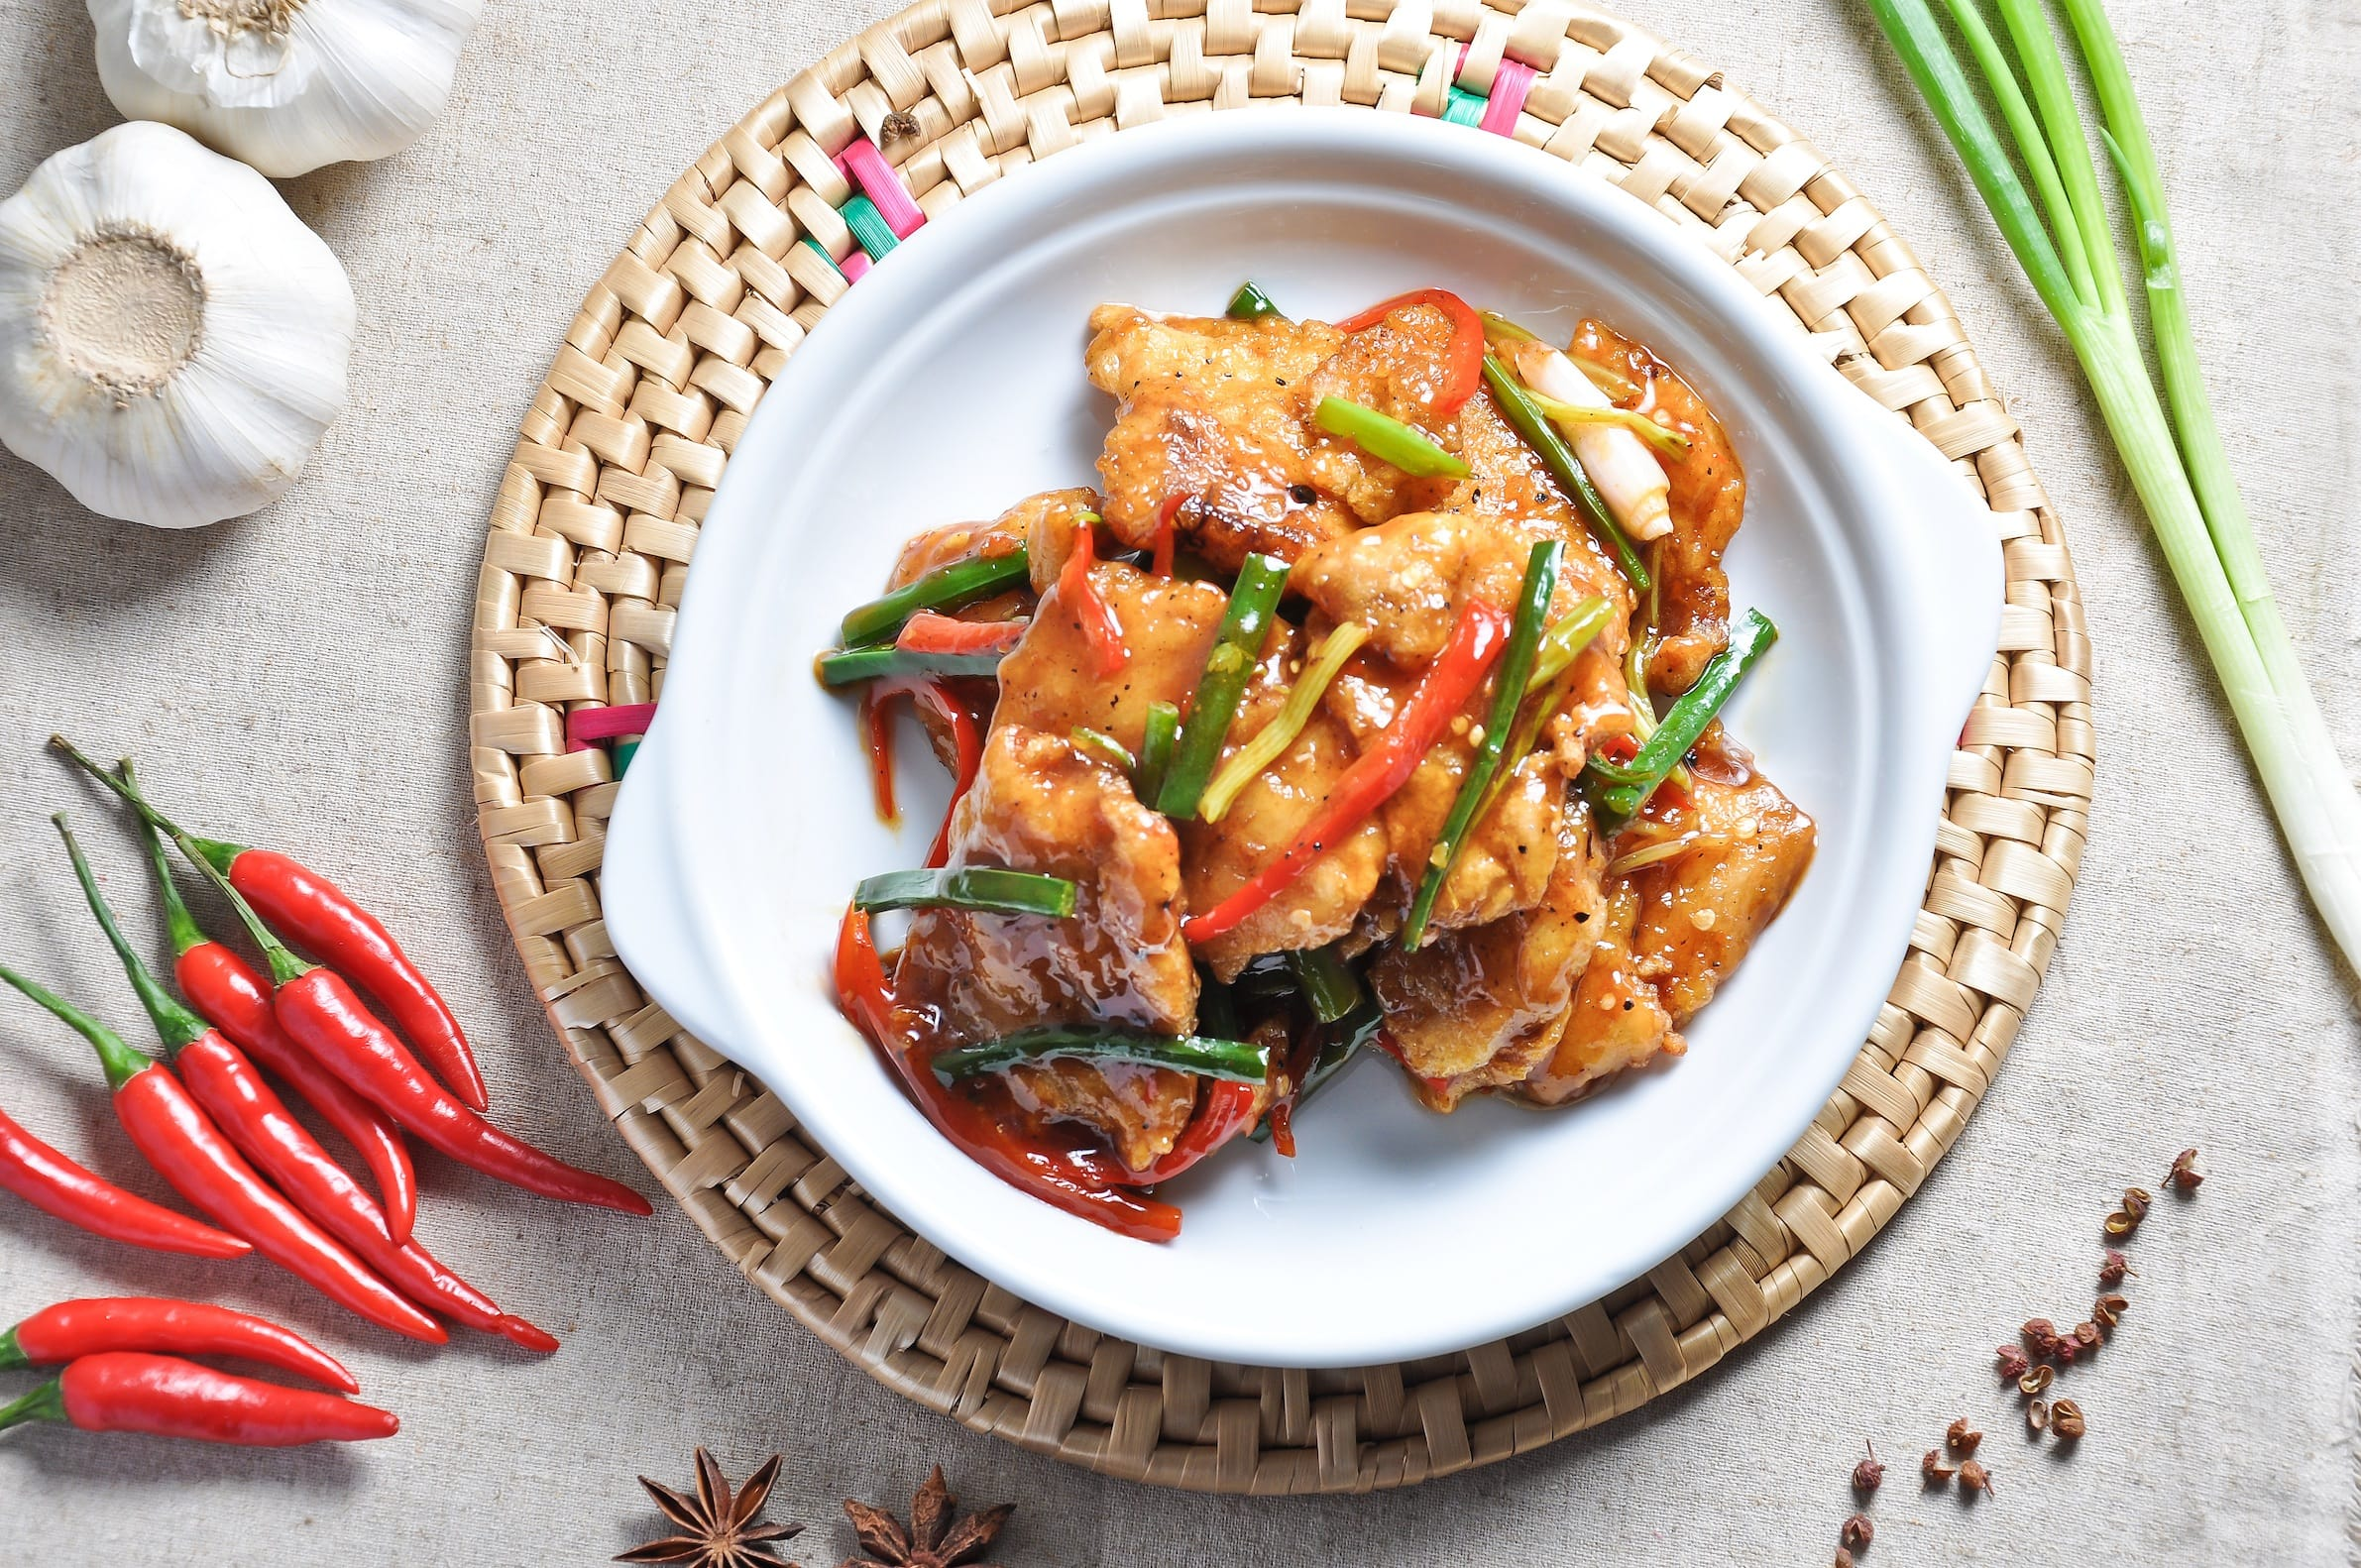 Stir Fried Fish Fillets with Pepper